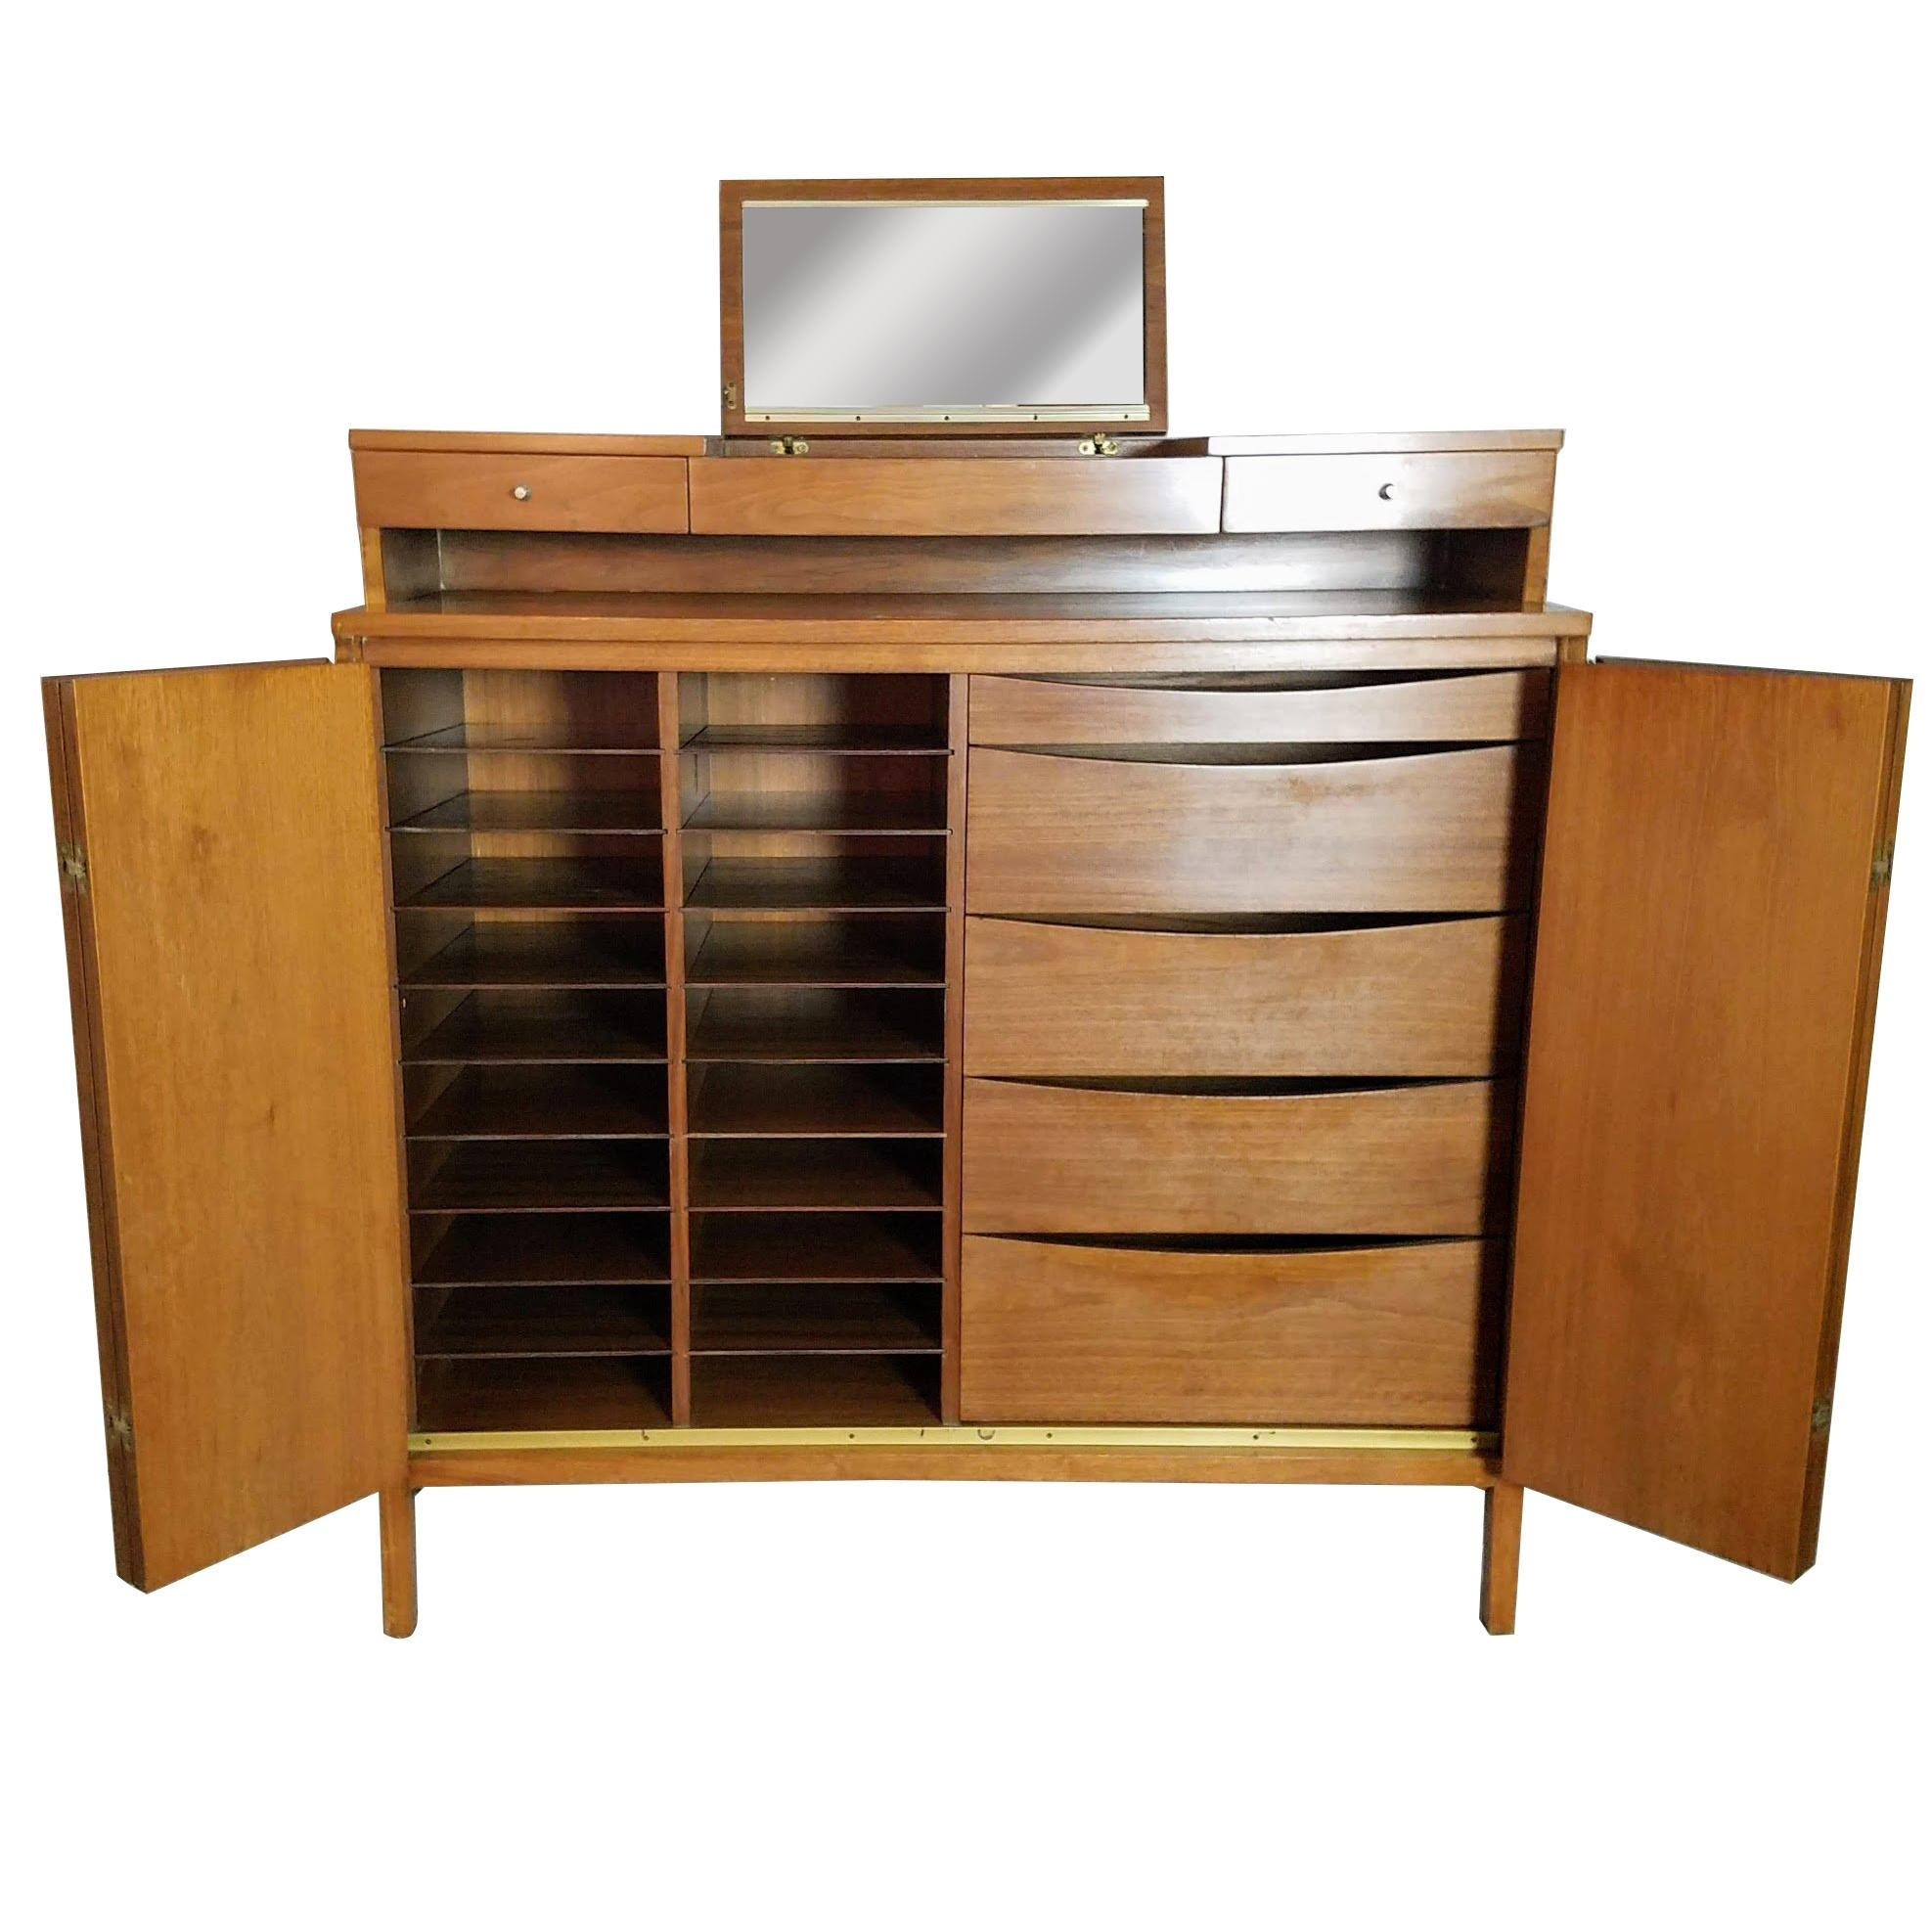 Charmant Paul McCobb Irwin Collection For Calvin Furniture Gentlemanu0027s Tall Chest,  1956 For Sale